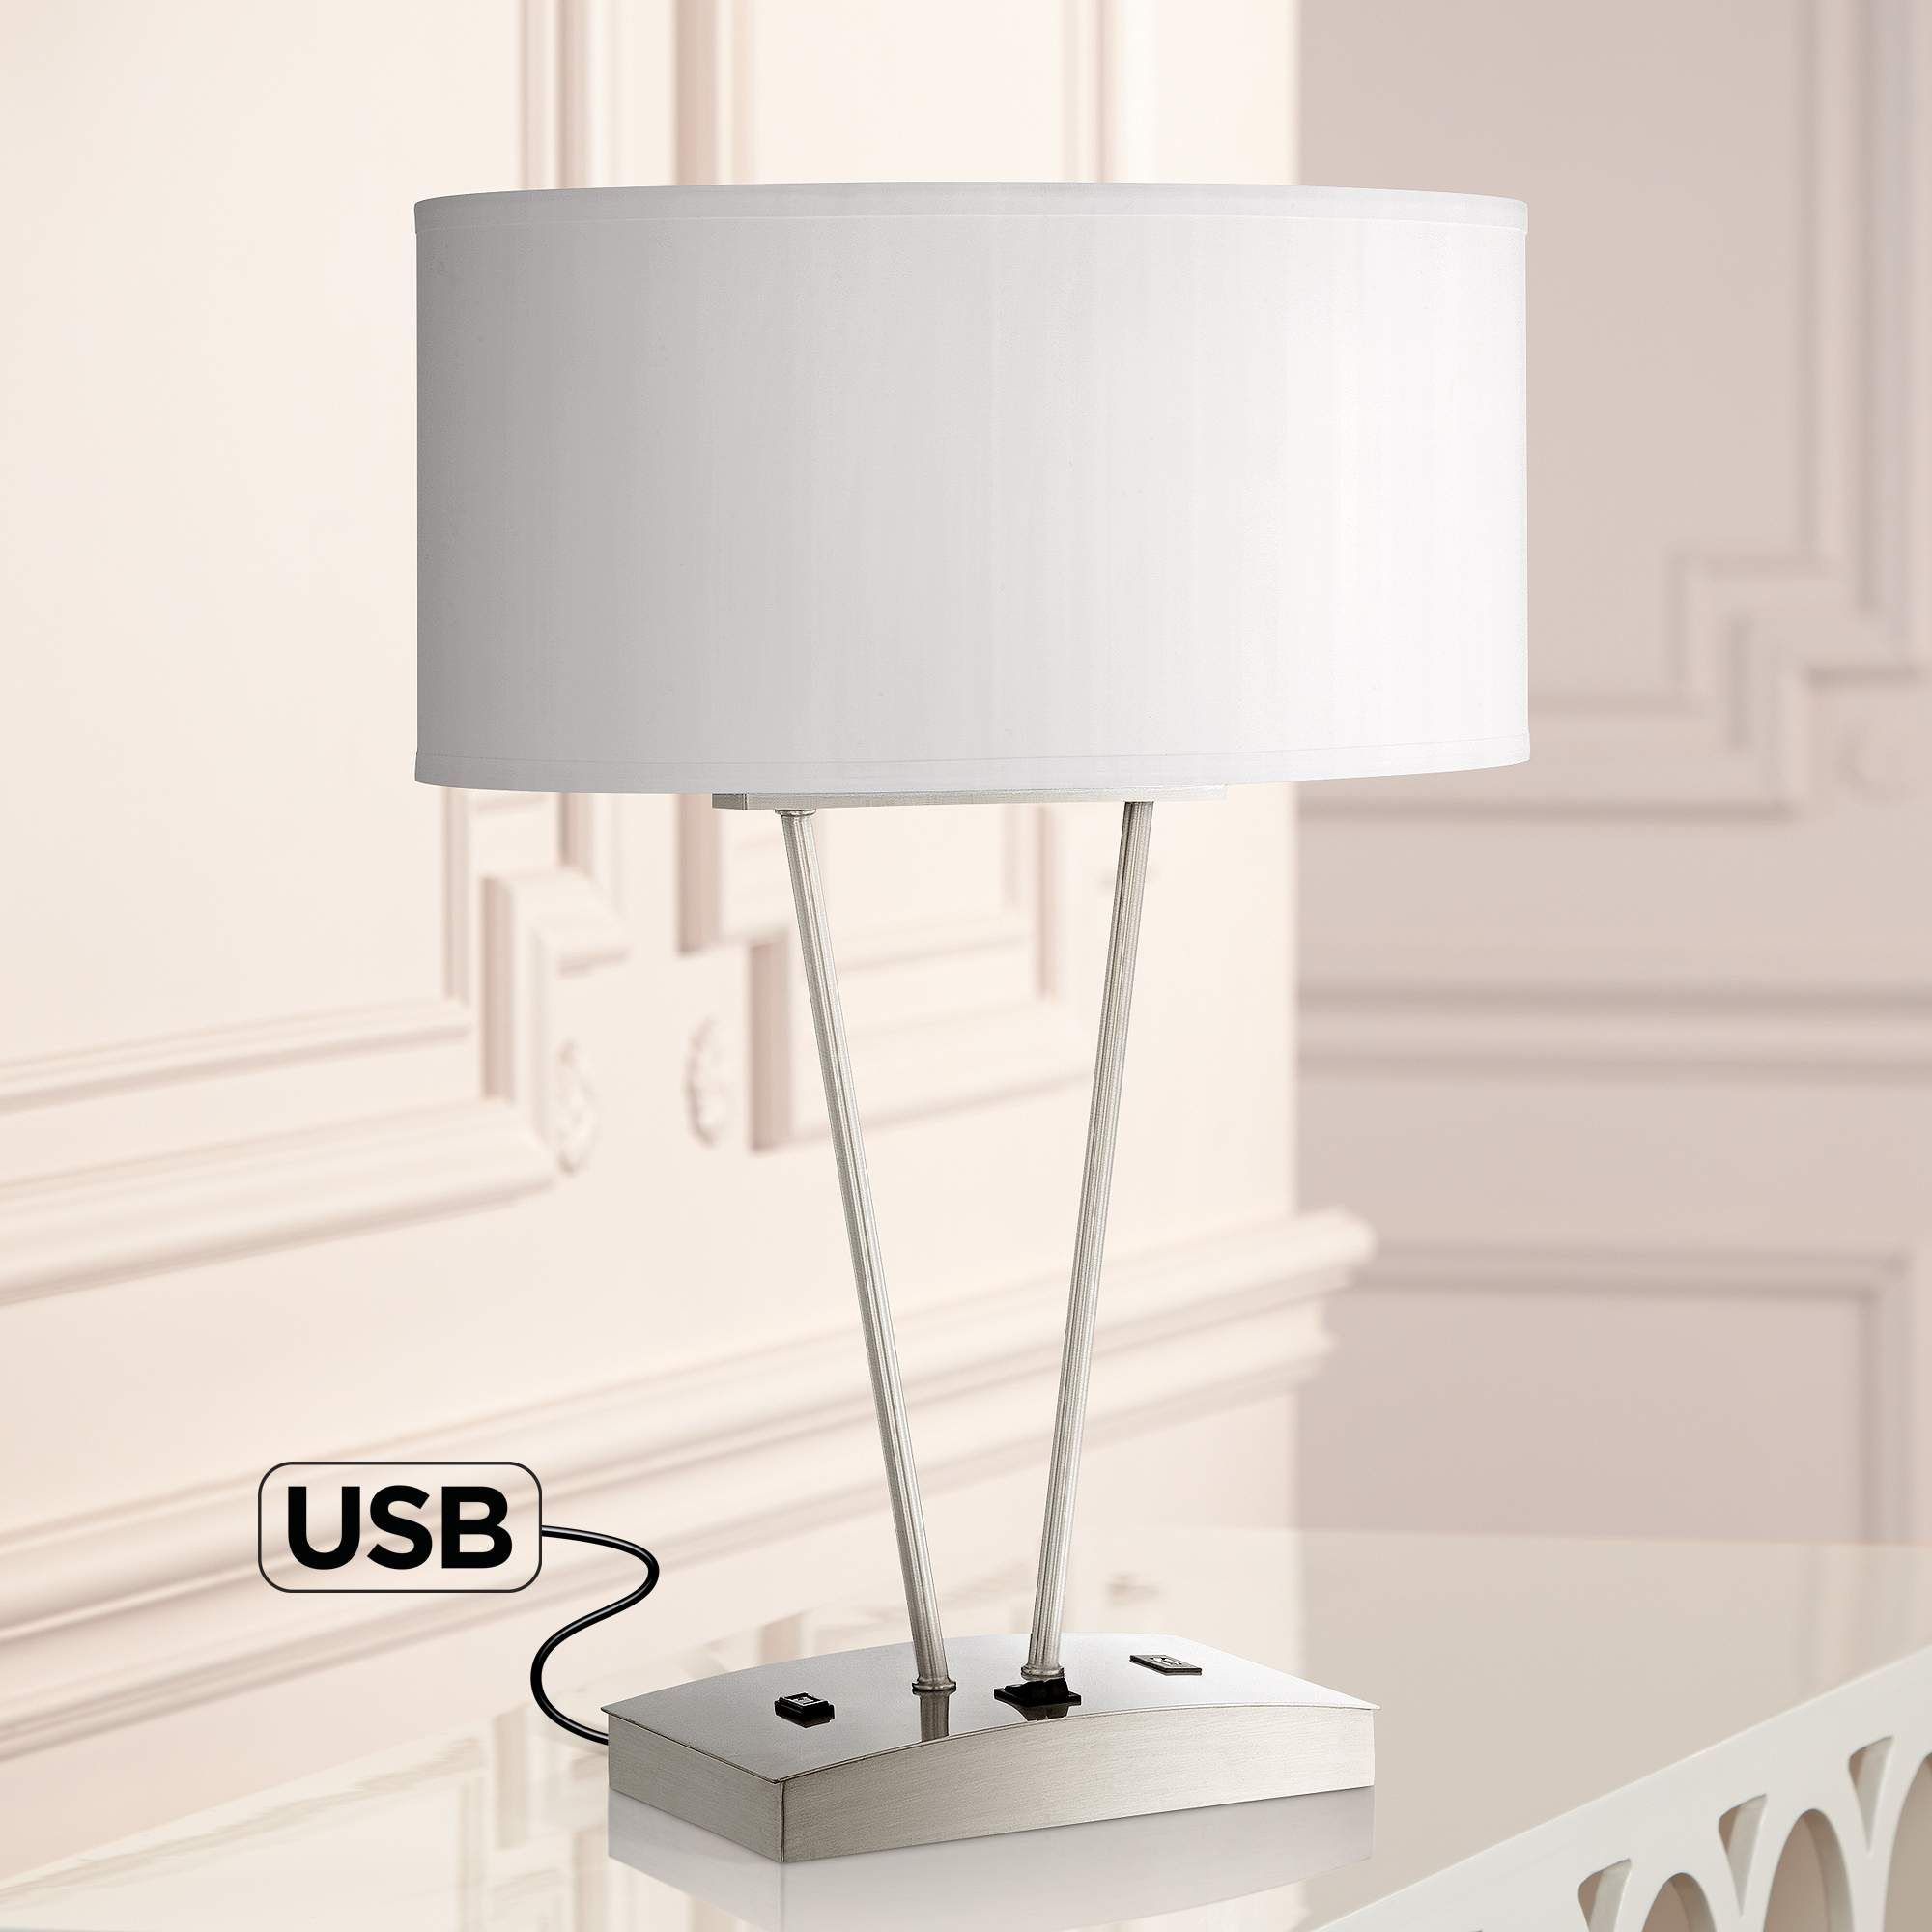 Leon metal table lamp with usb port and utility plug style 8k523 mozeypictures Image collections